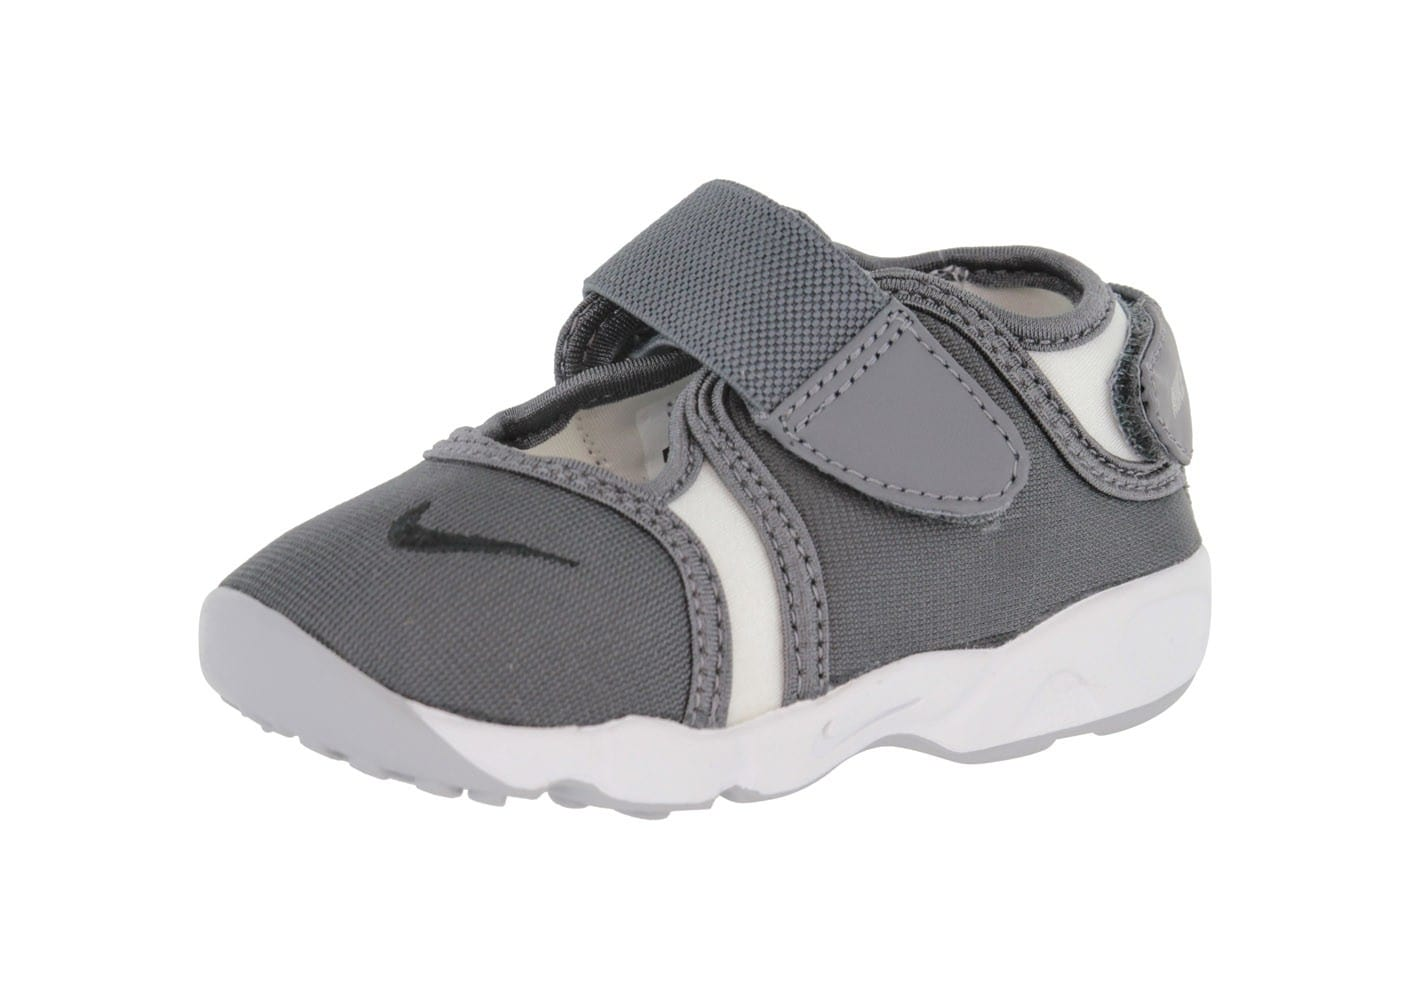 nike rift grise chaussures chaussures chausport. Black Bedroom Furniture Sets. Home Design Ideas